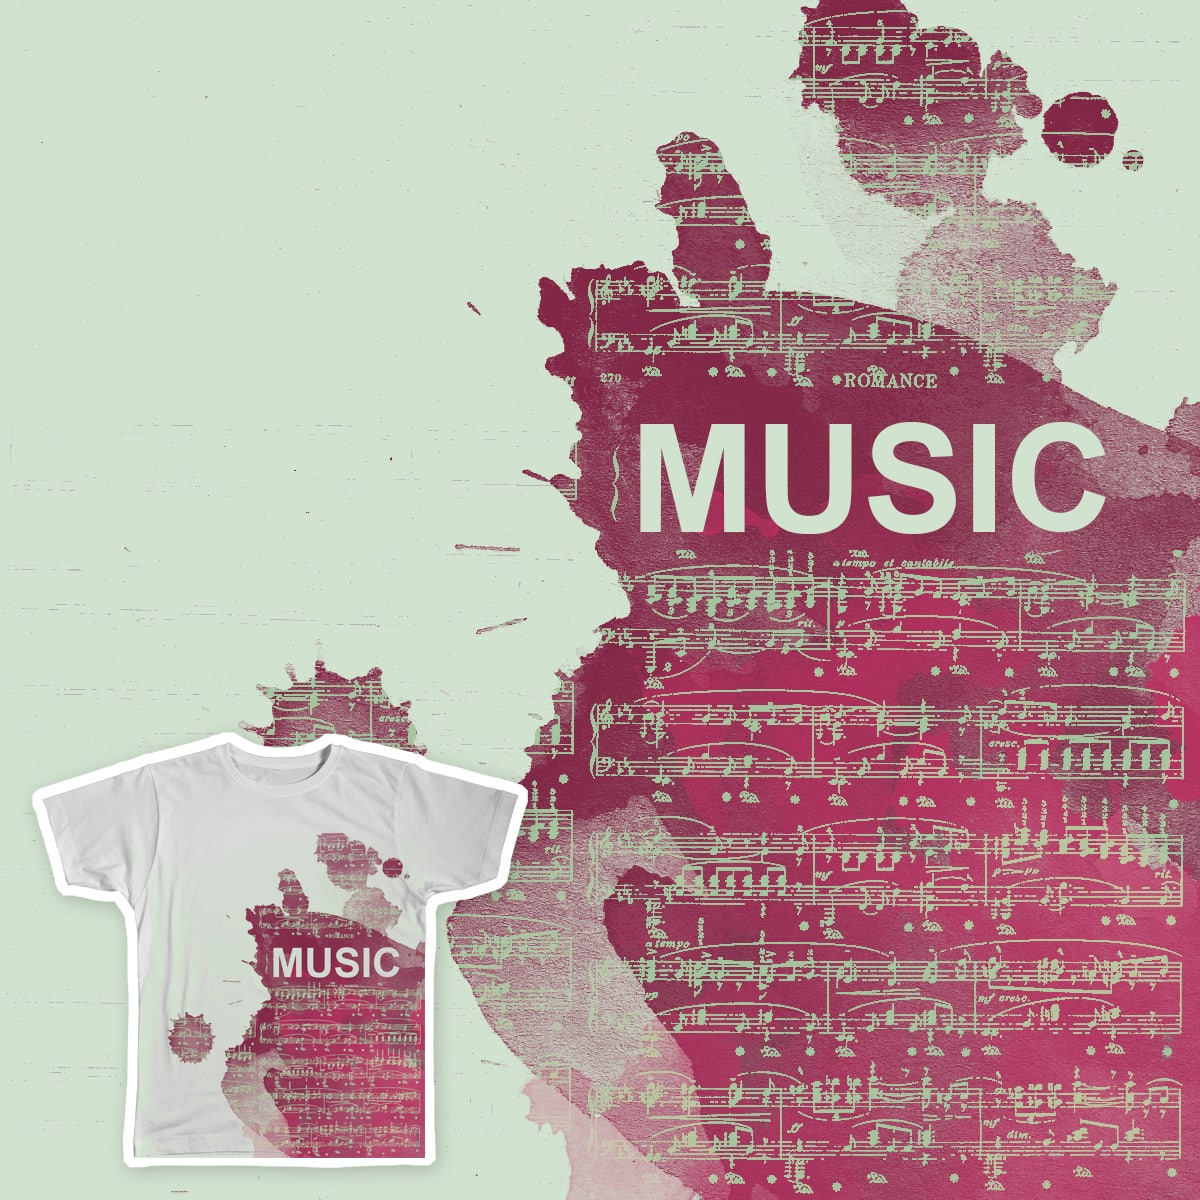 Music by dolphine4200 on Threadless